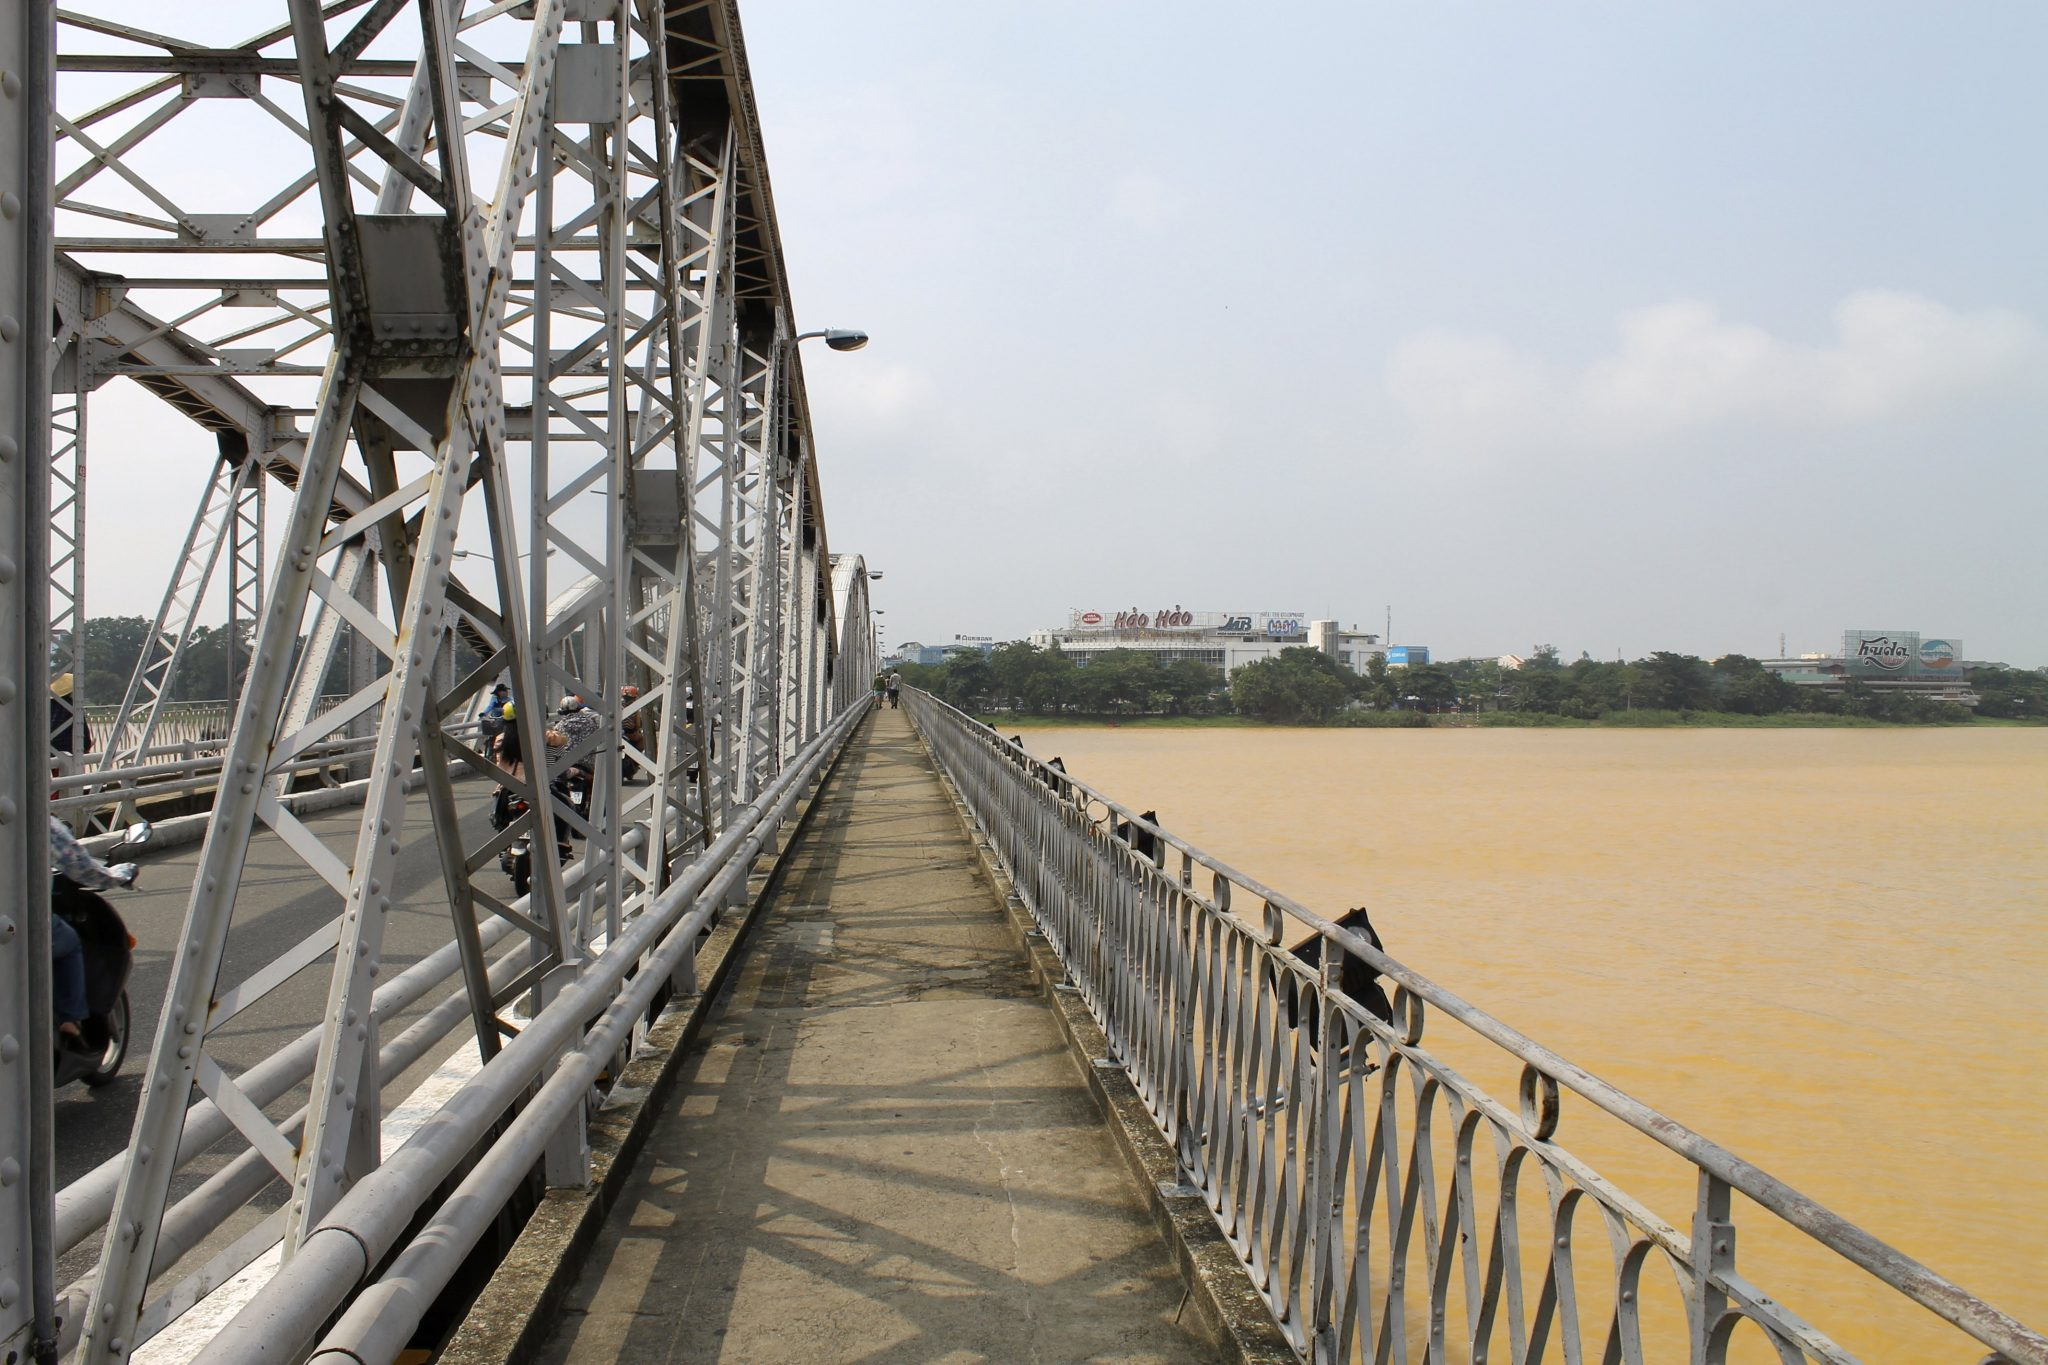 Truong Tien Bridge over the Perfume River